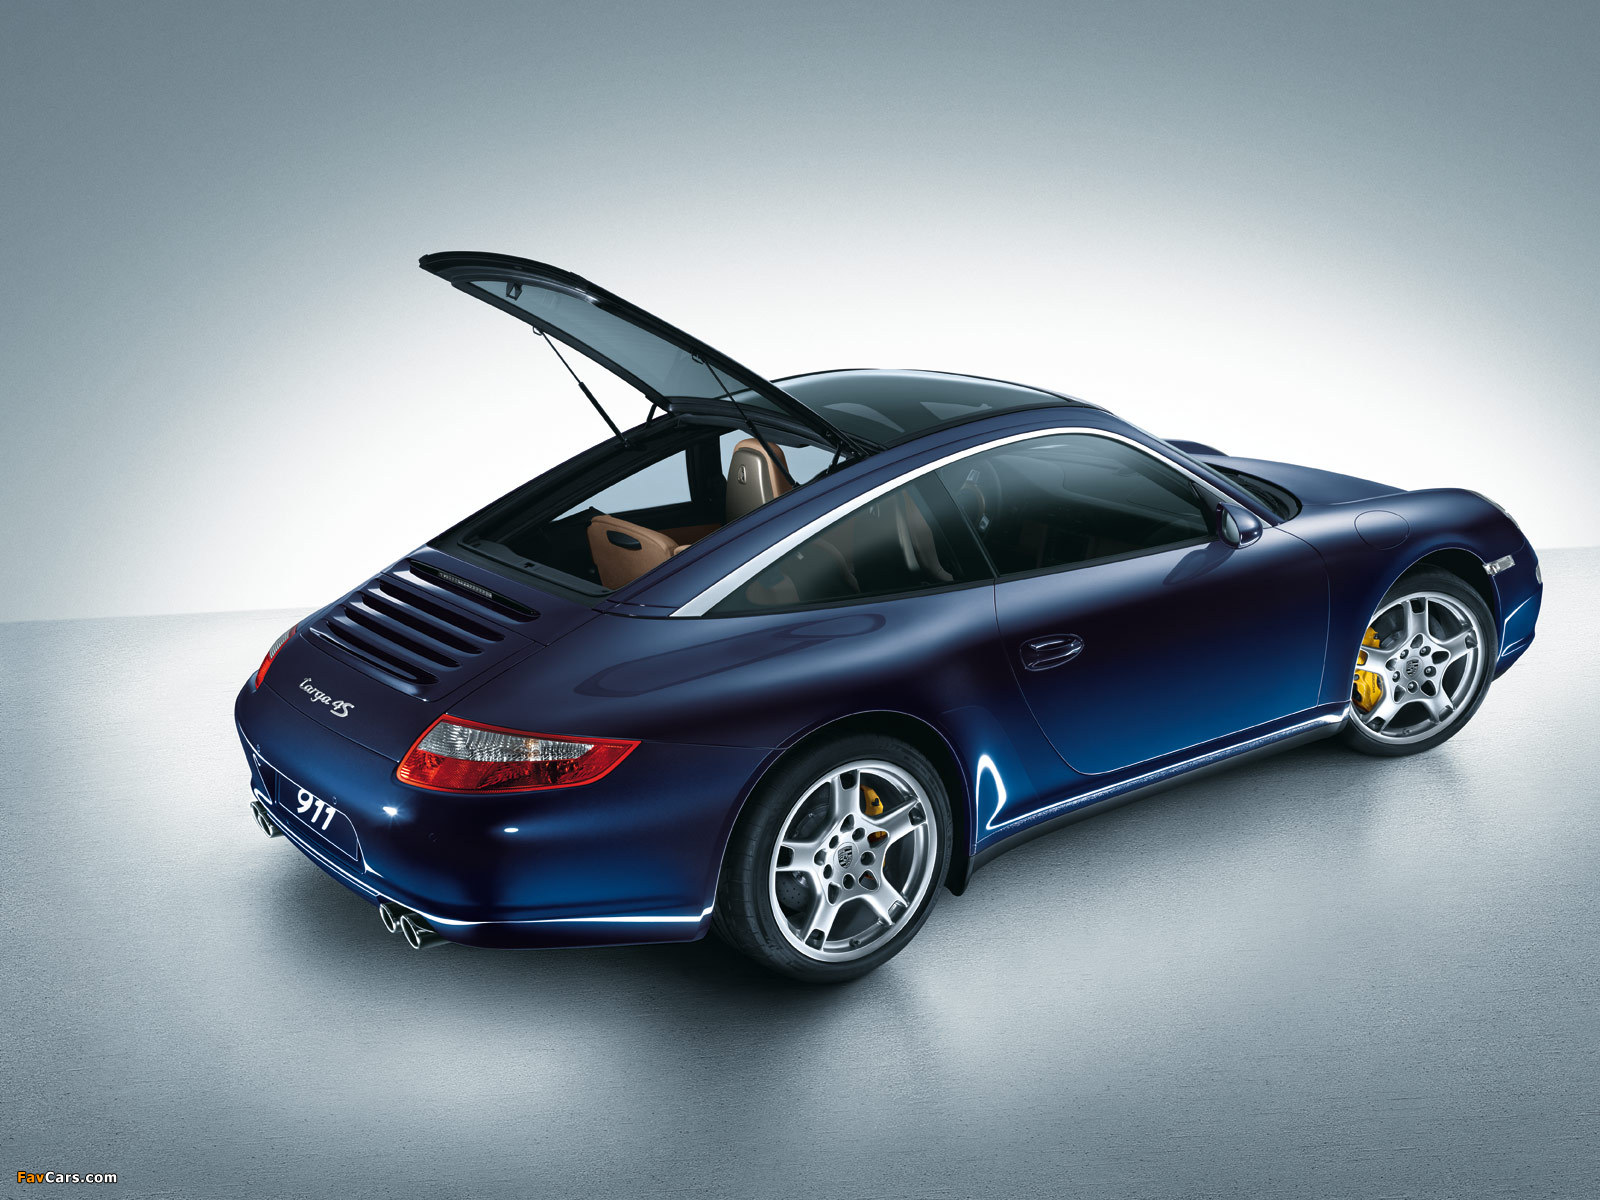 Wallpapers Of Porsche 911 Targa 4s 997 2005 08 1600x1200